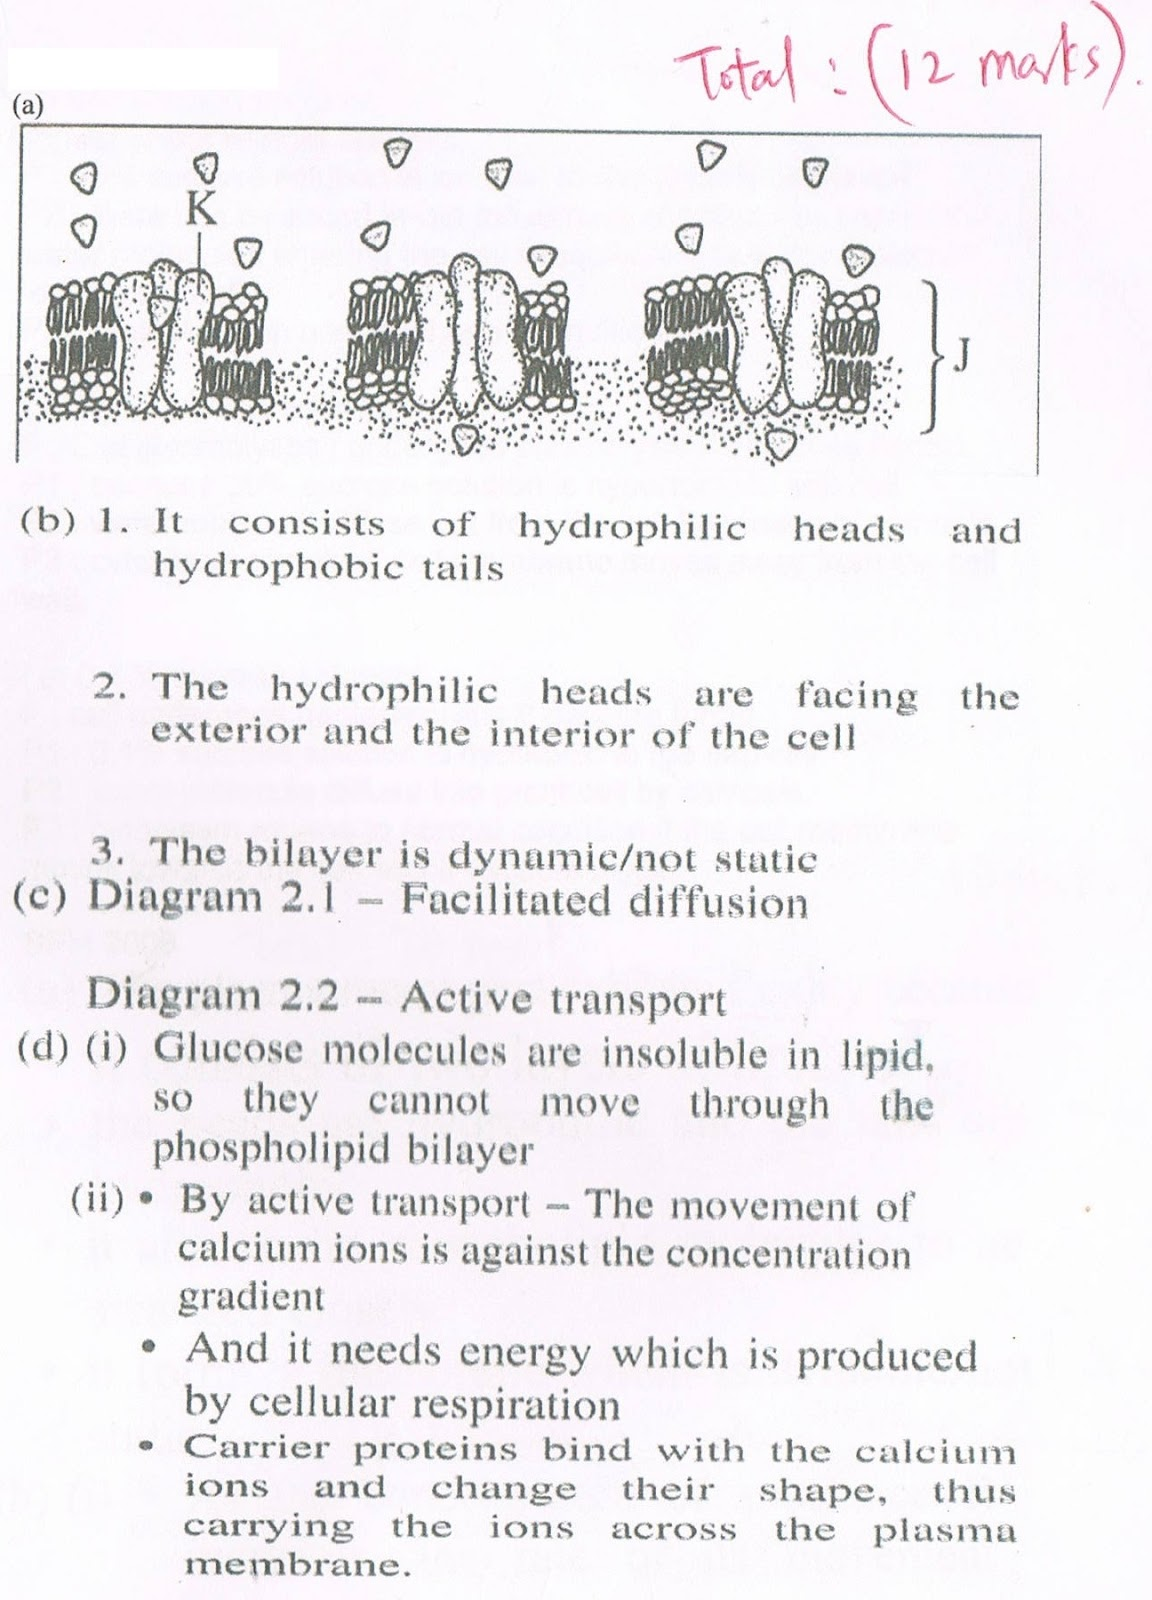 write essay question cell division